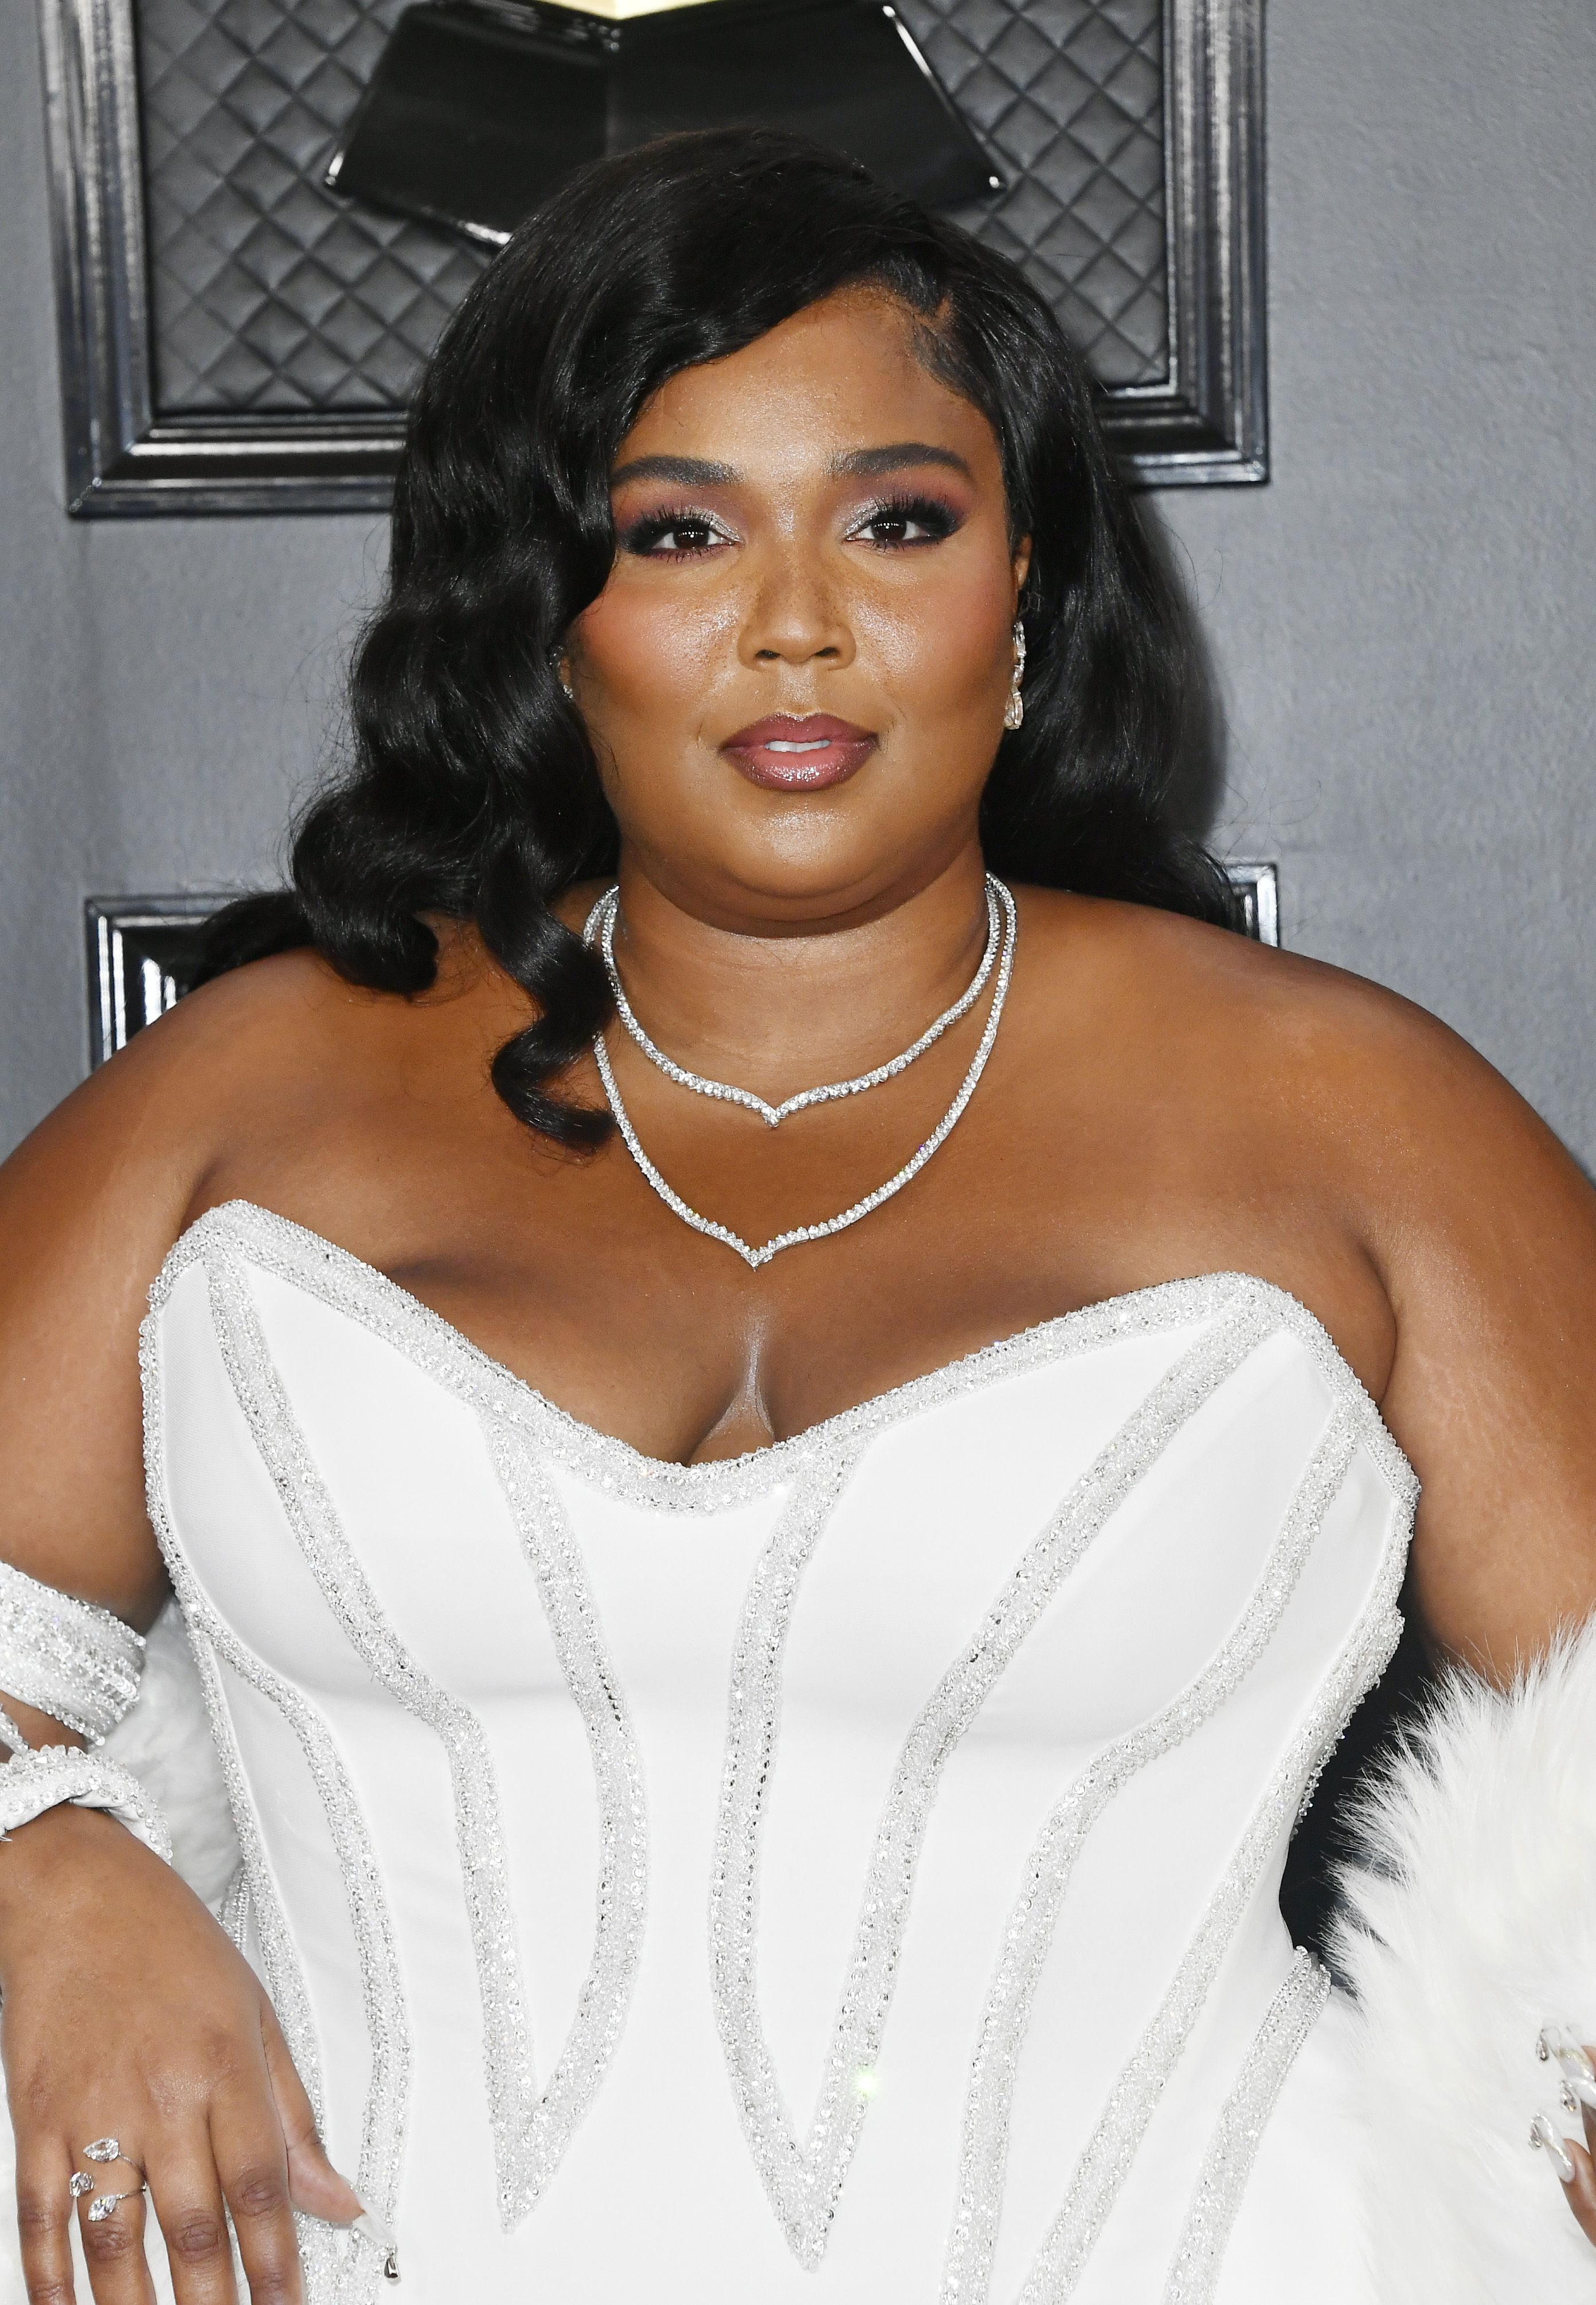 Lizzo Has a Britney Spears Moment at the 2020 Grammys